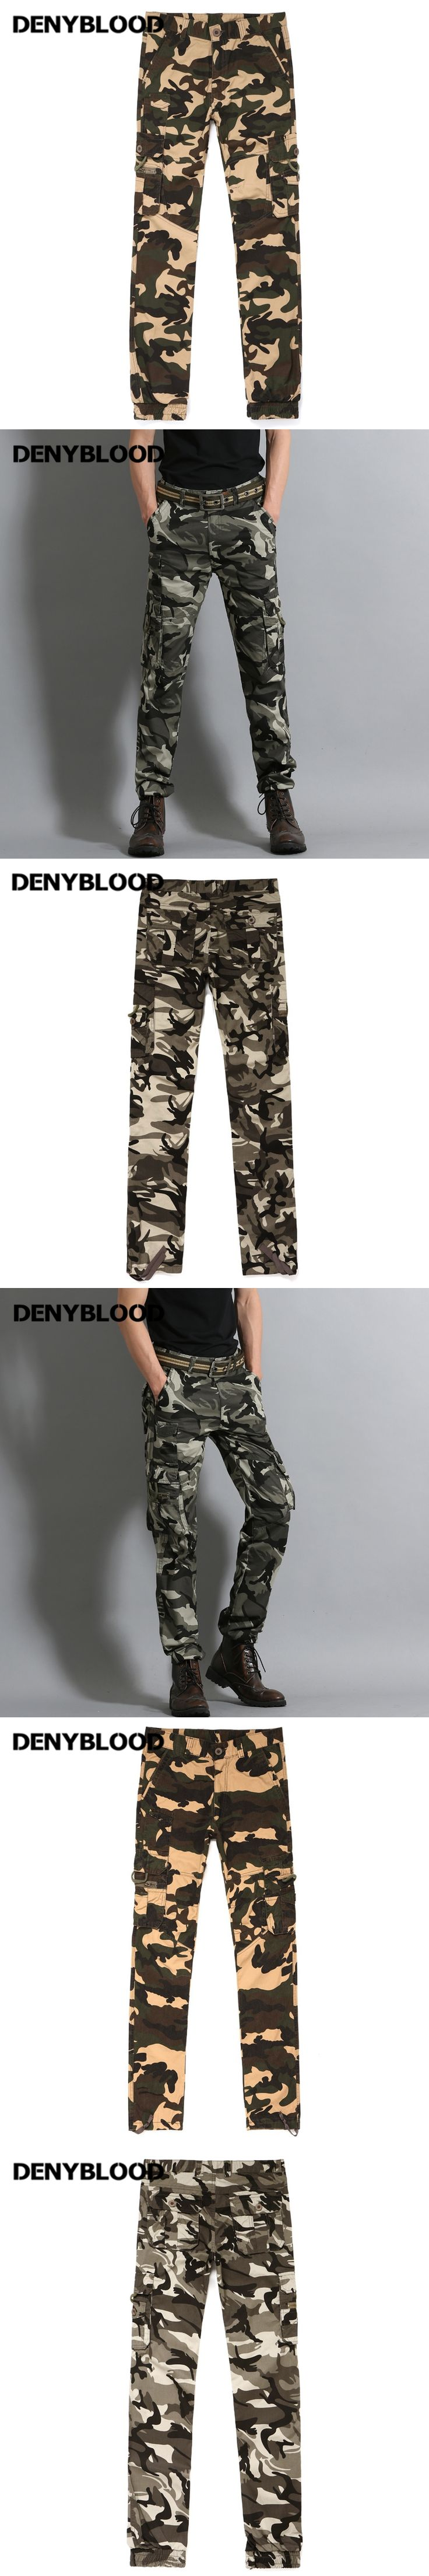 Denyblood Jeans Mens Cargo Pants Army Green Camouflage Chinos Pants Cotton Military Twill Trousers Casual Pants B0741